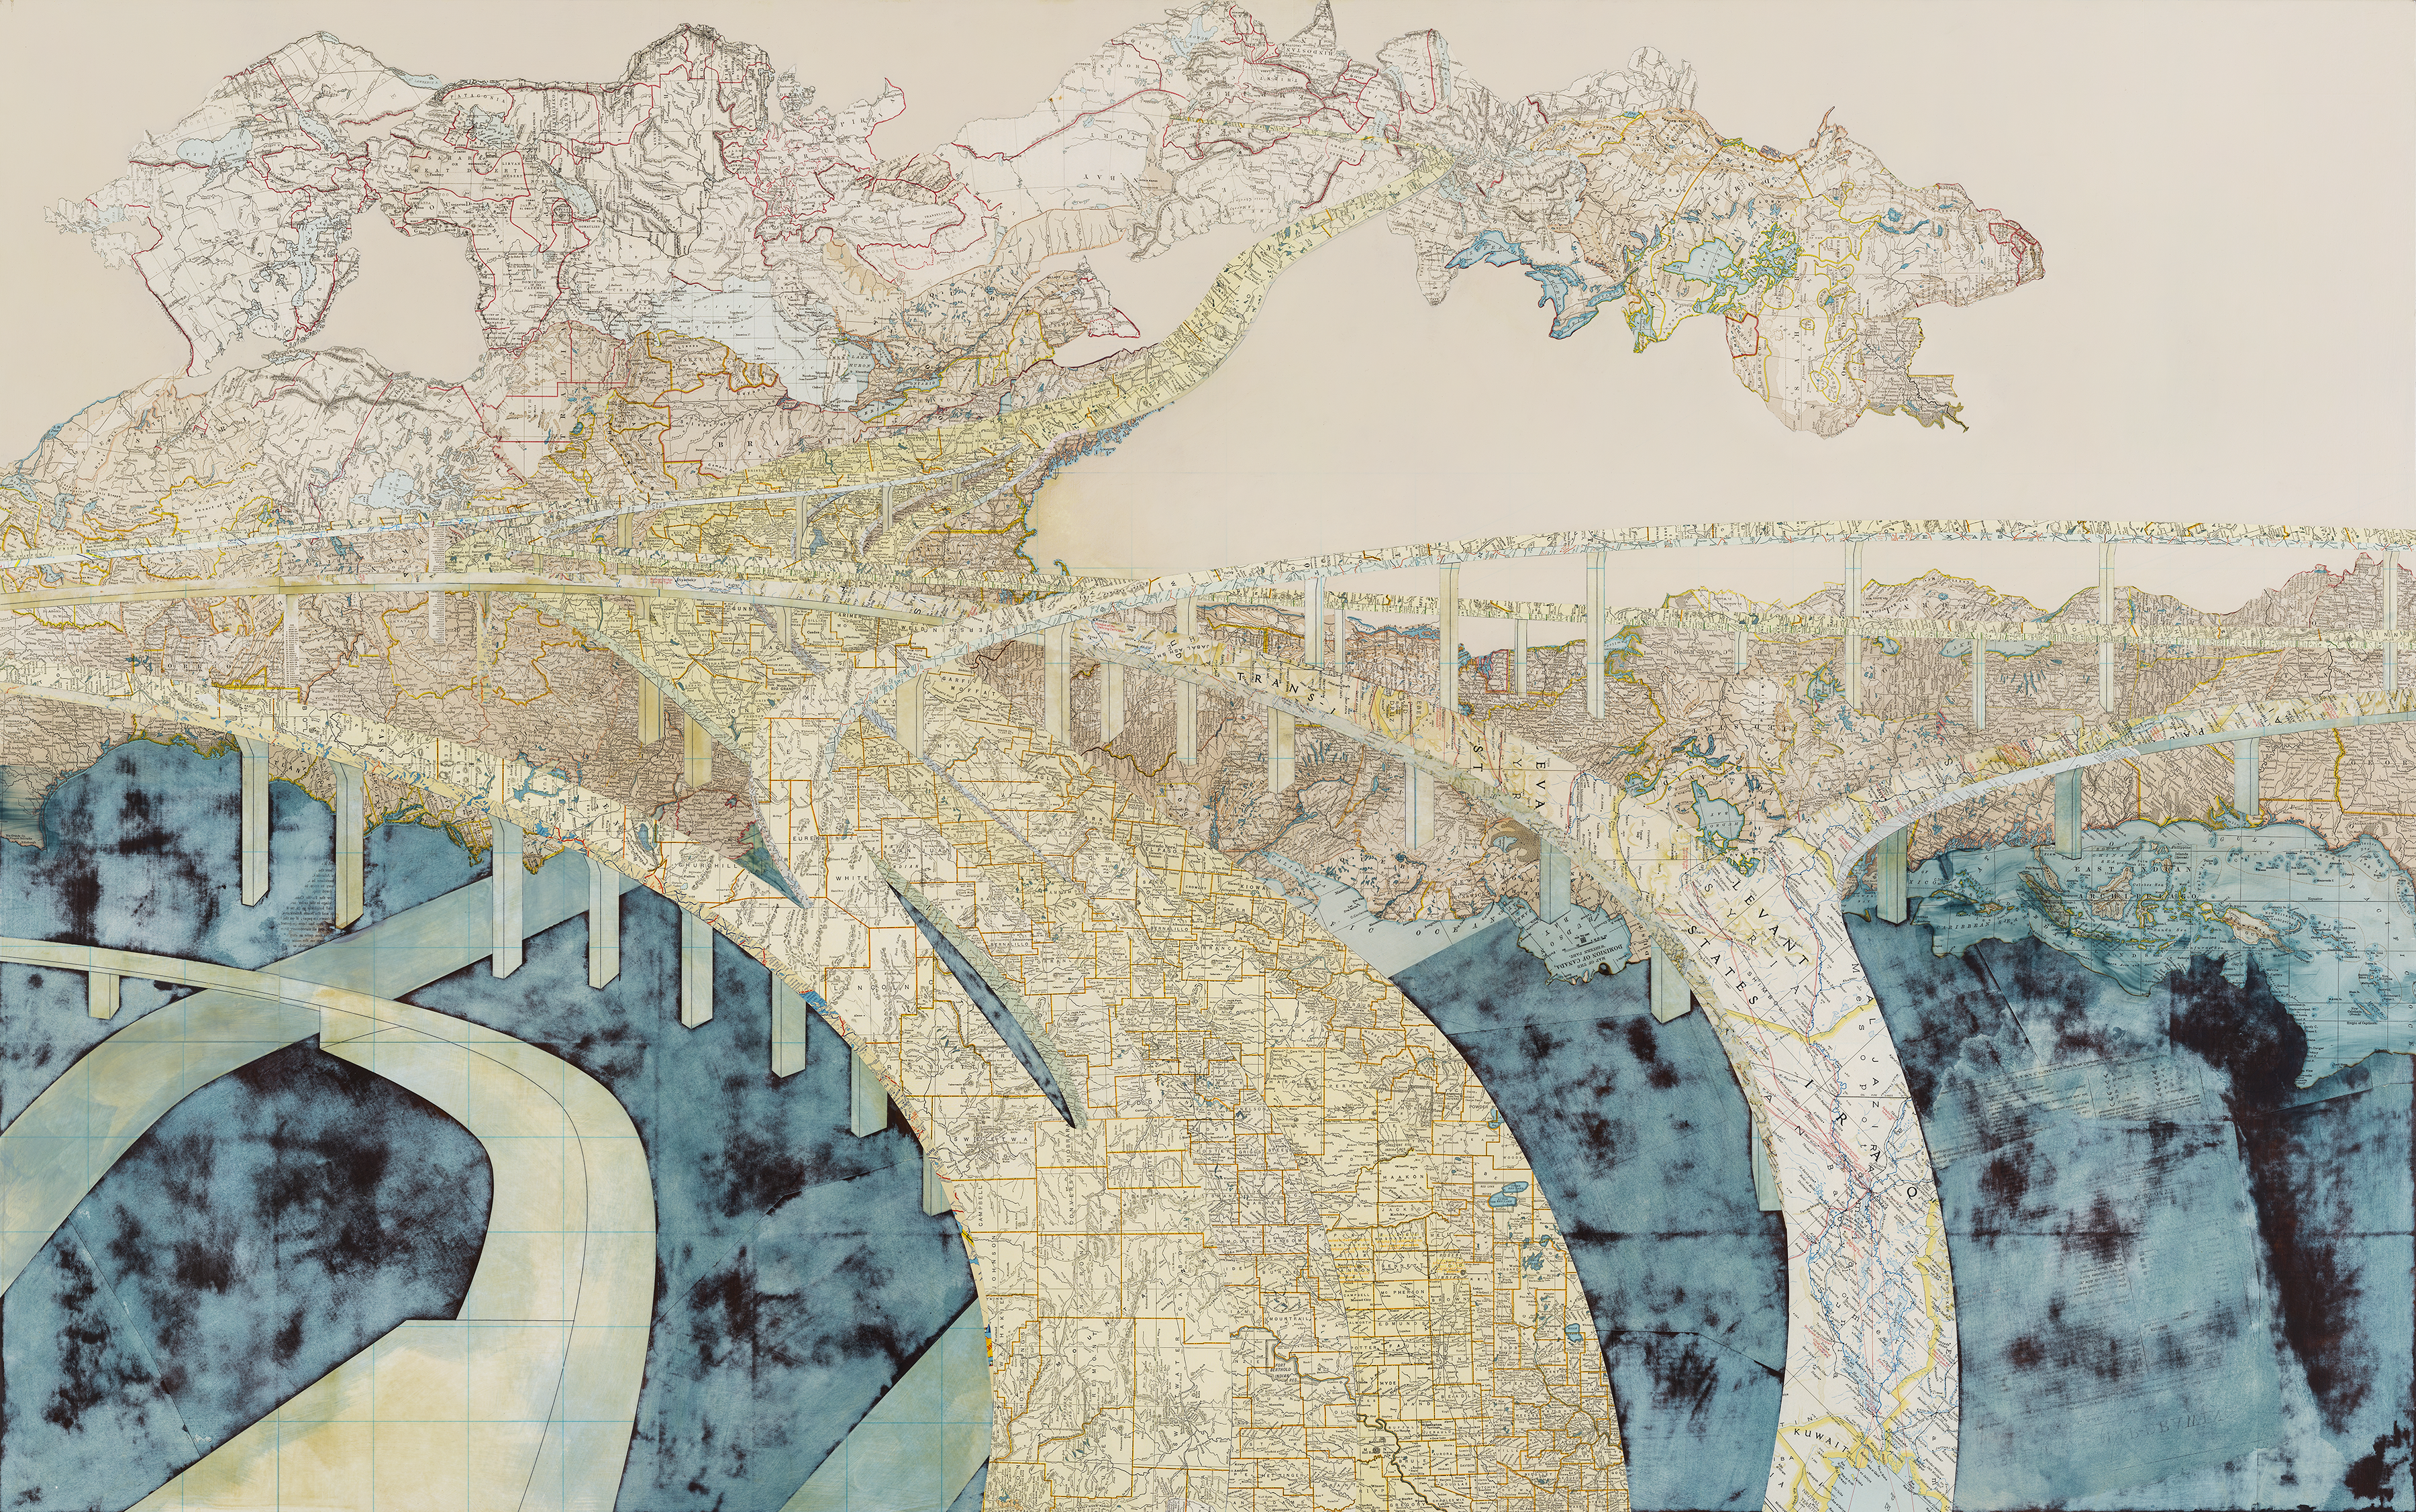 Chasing the Dragon, 2006 Inlaid maps and acrylic on wood panel 40 x 64 inches